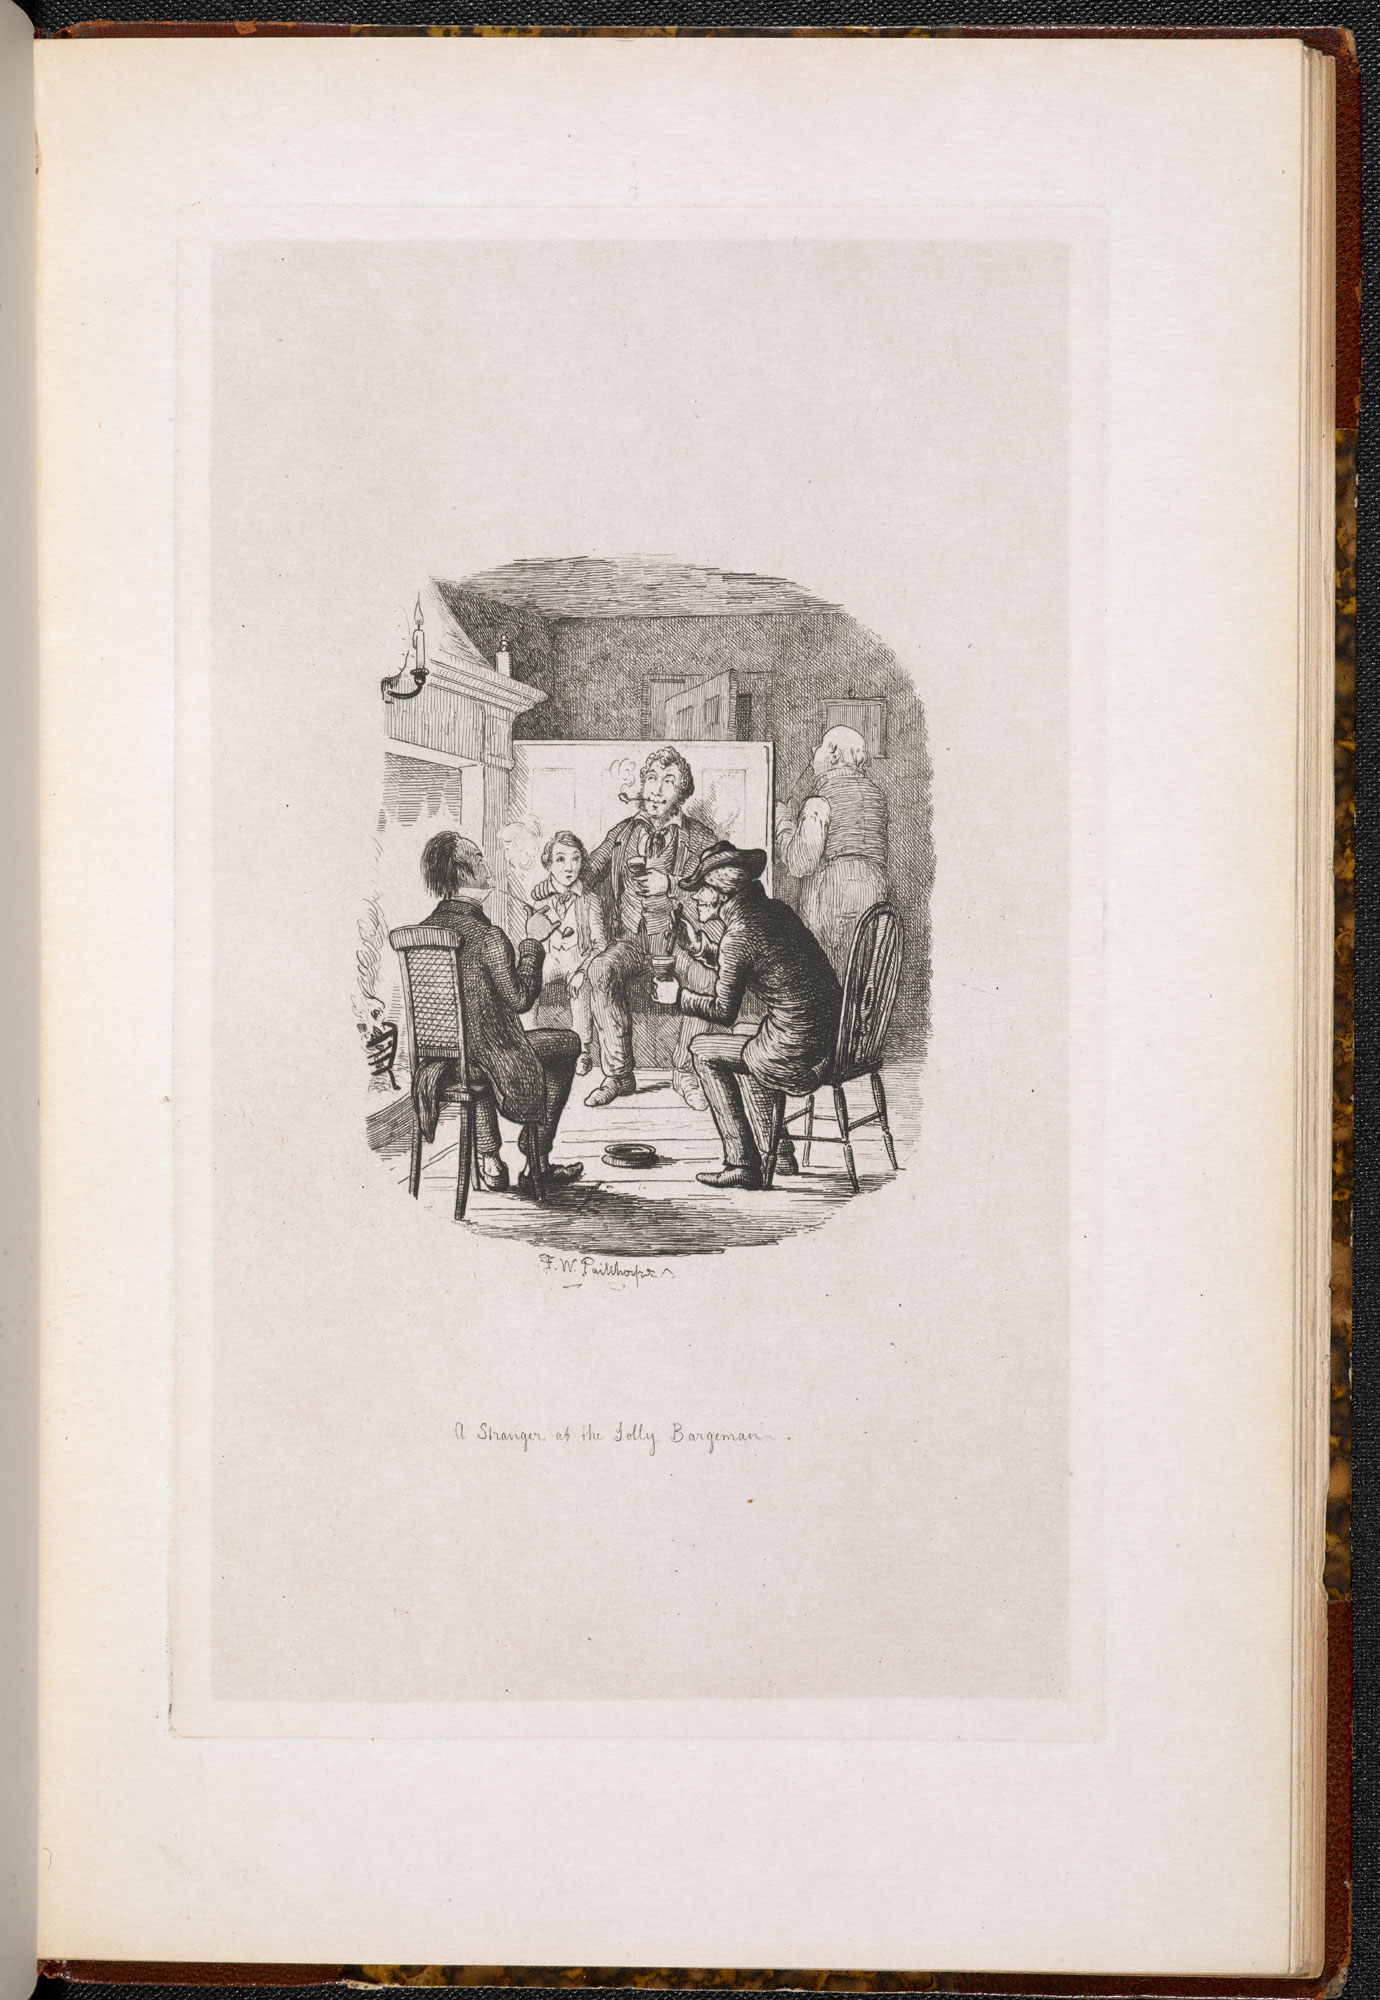 F W Pailthorpe's illustrations to Great Expectations [page: 4]